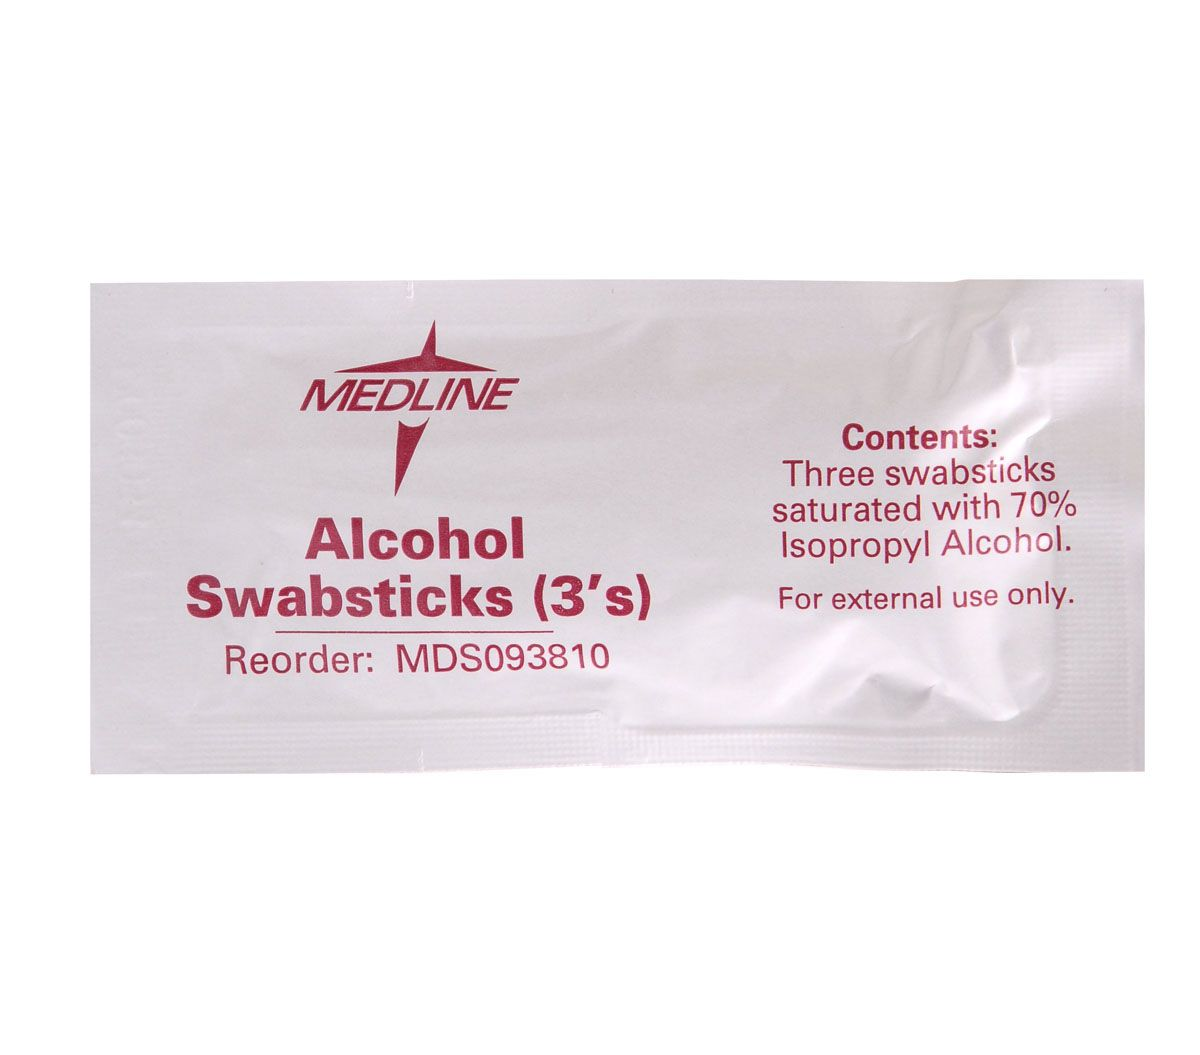 Medline Alcohol Swabstick, Each - Model MDS093810